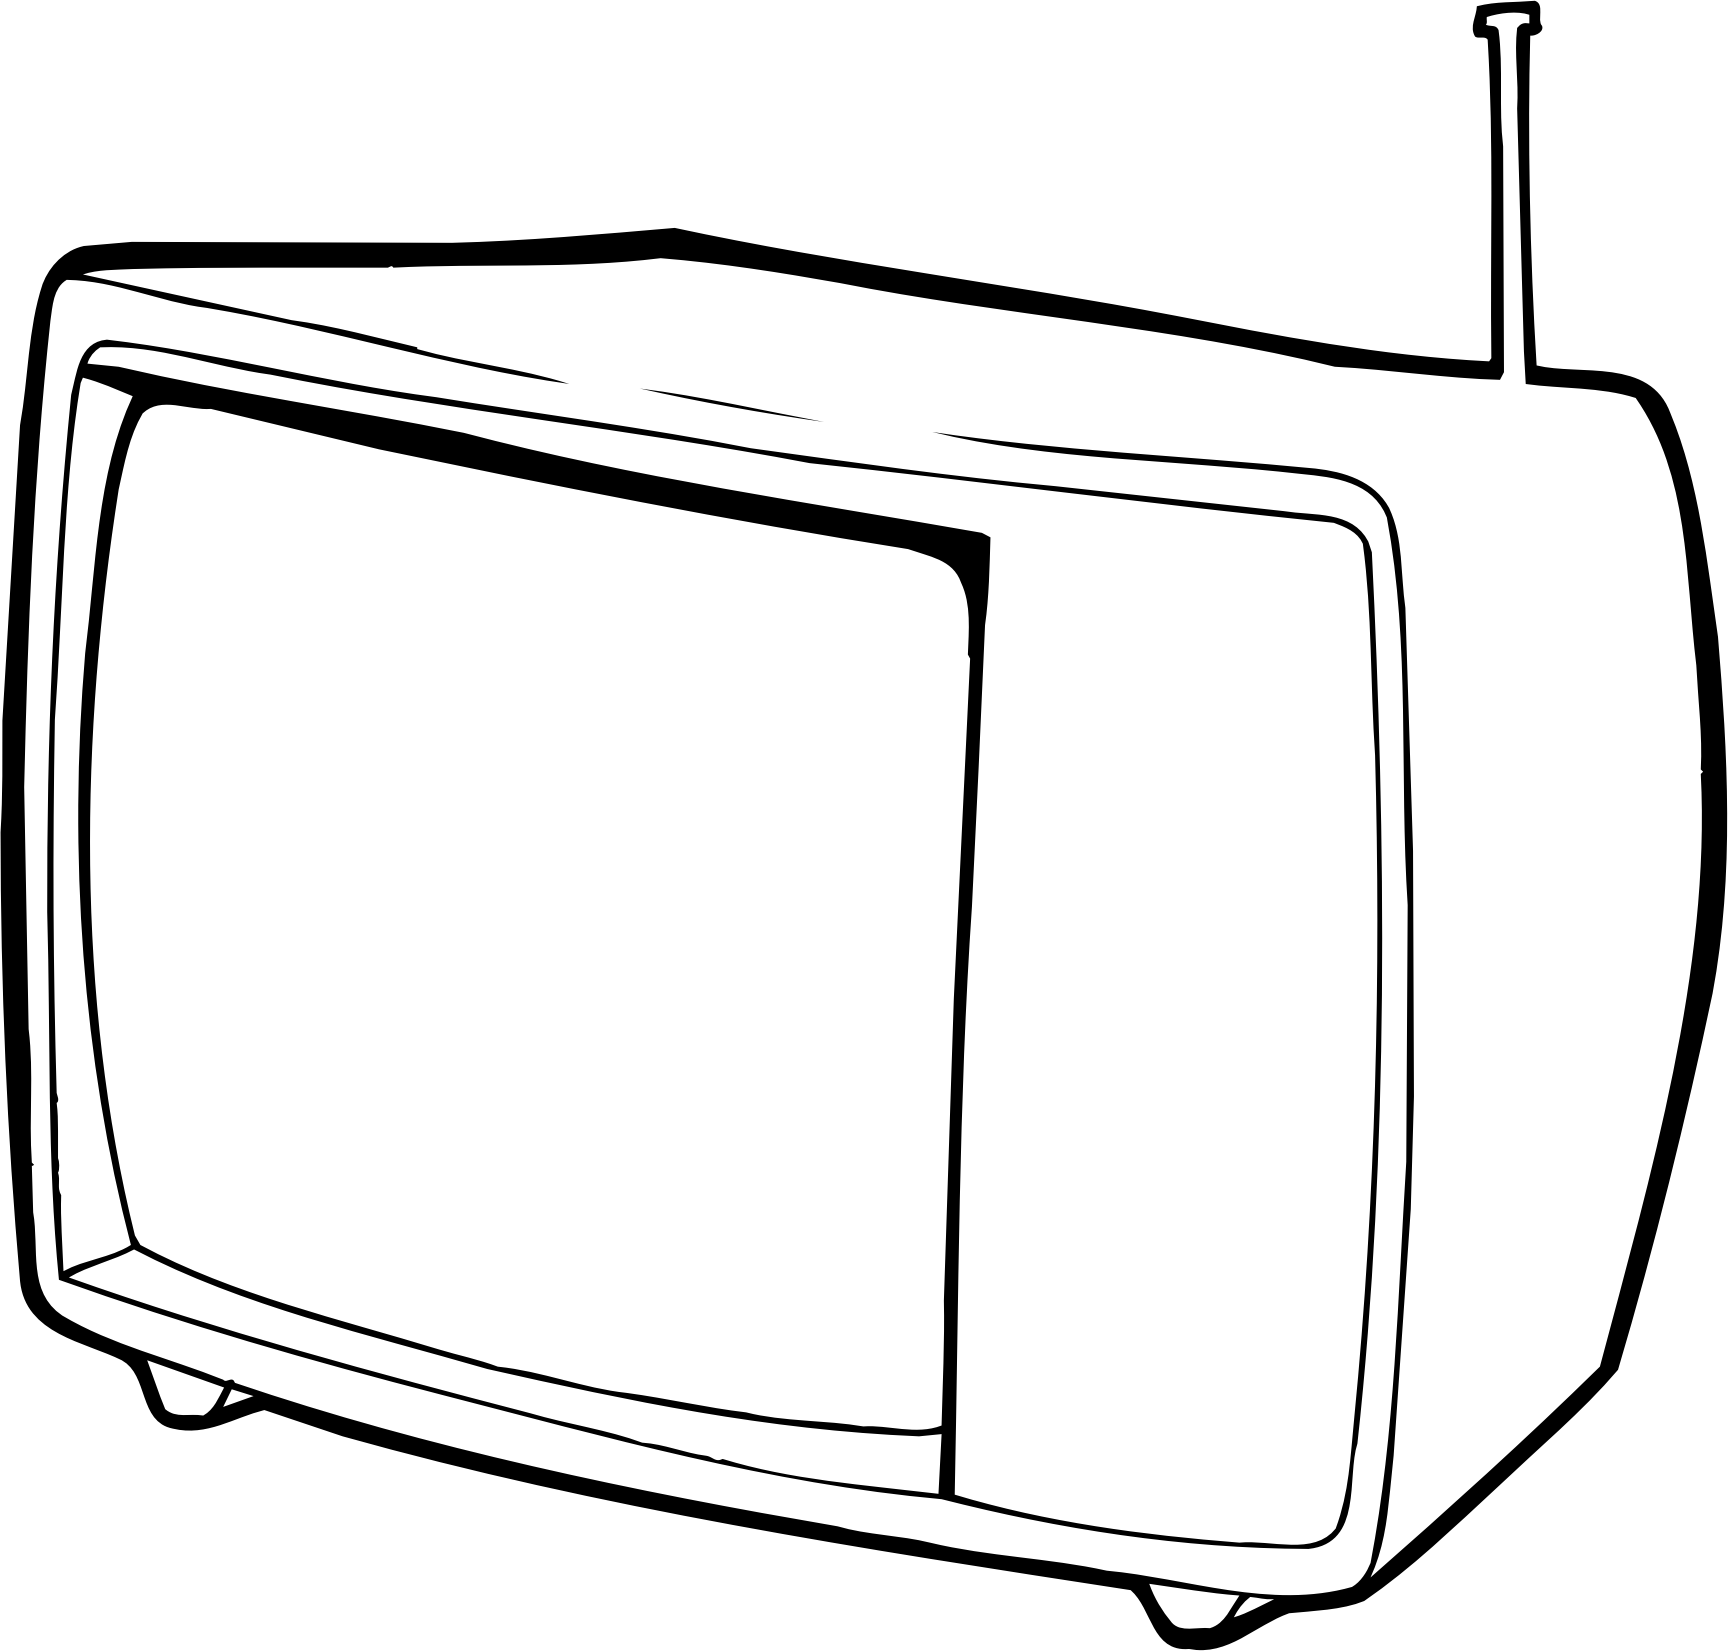 The office show clipart black and white freeuse Tv Clipart Black And White | Free download best Tv Clipart ... freeuse